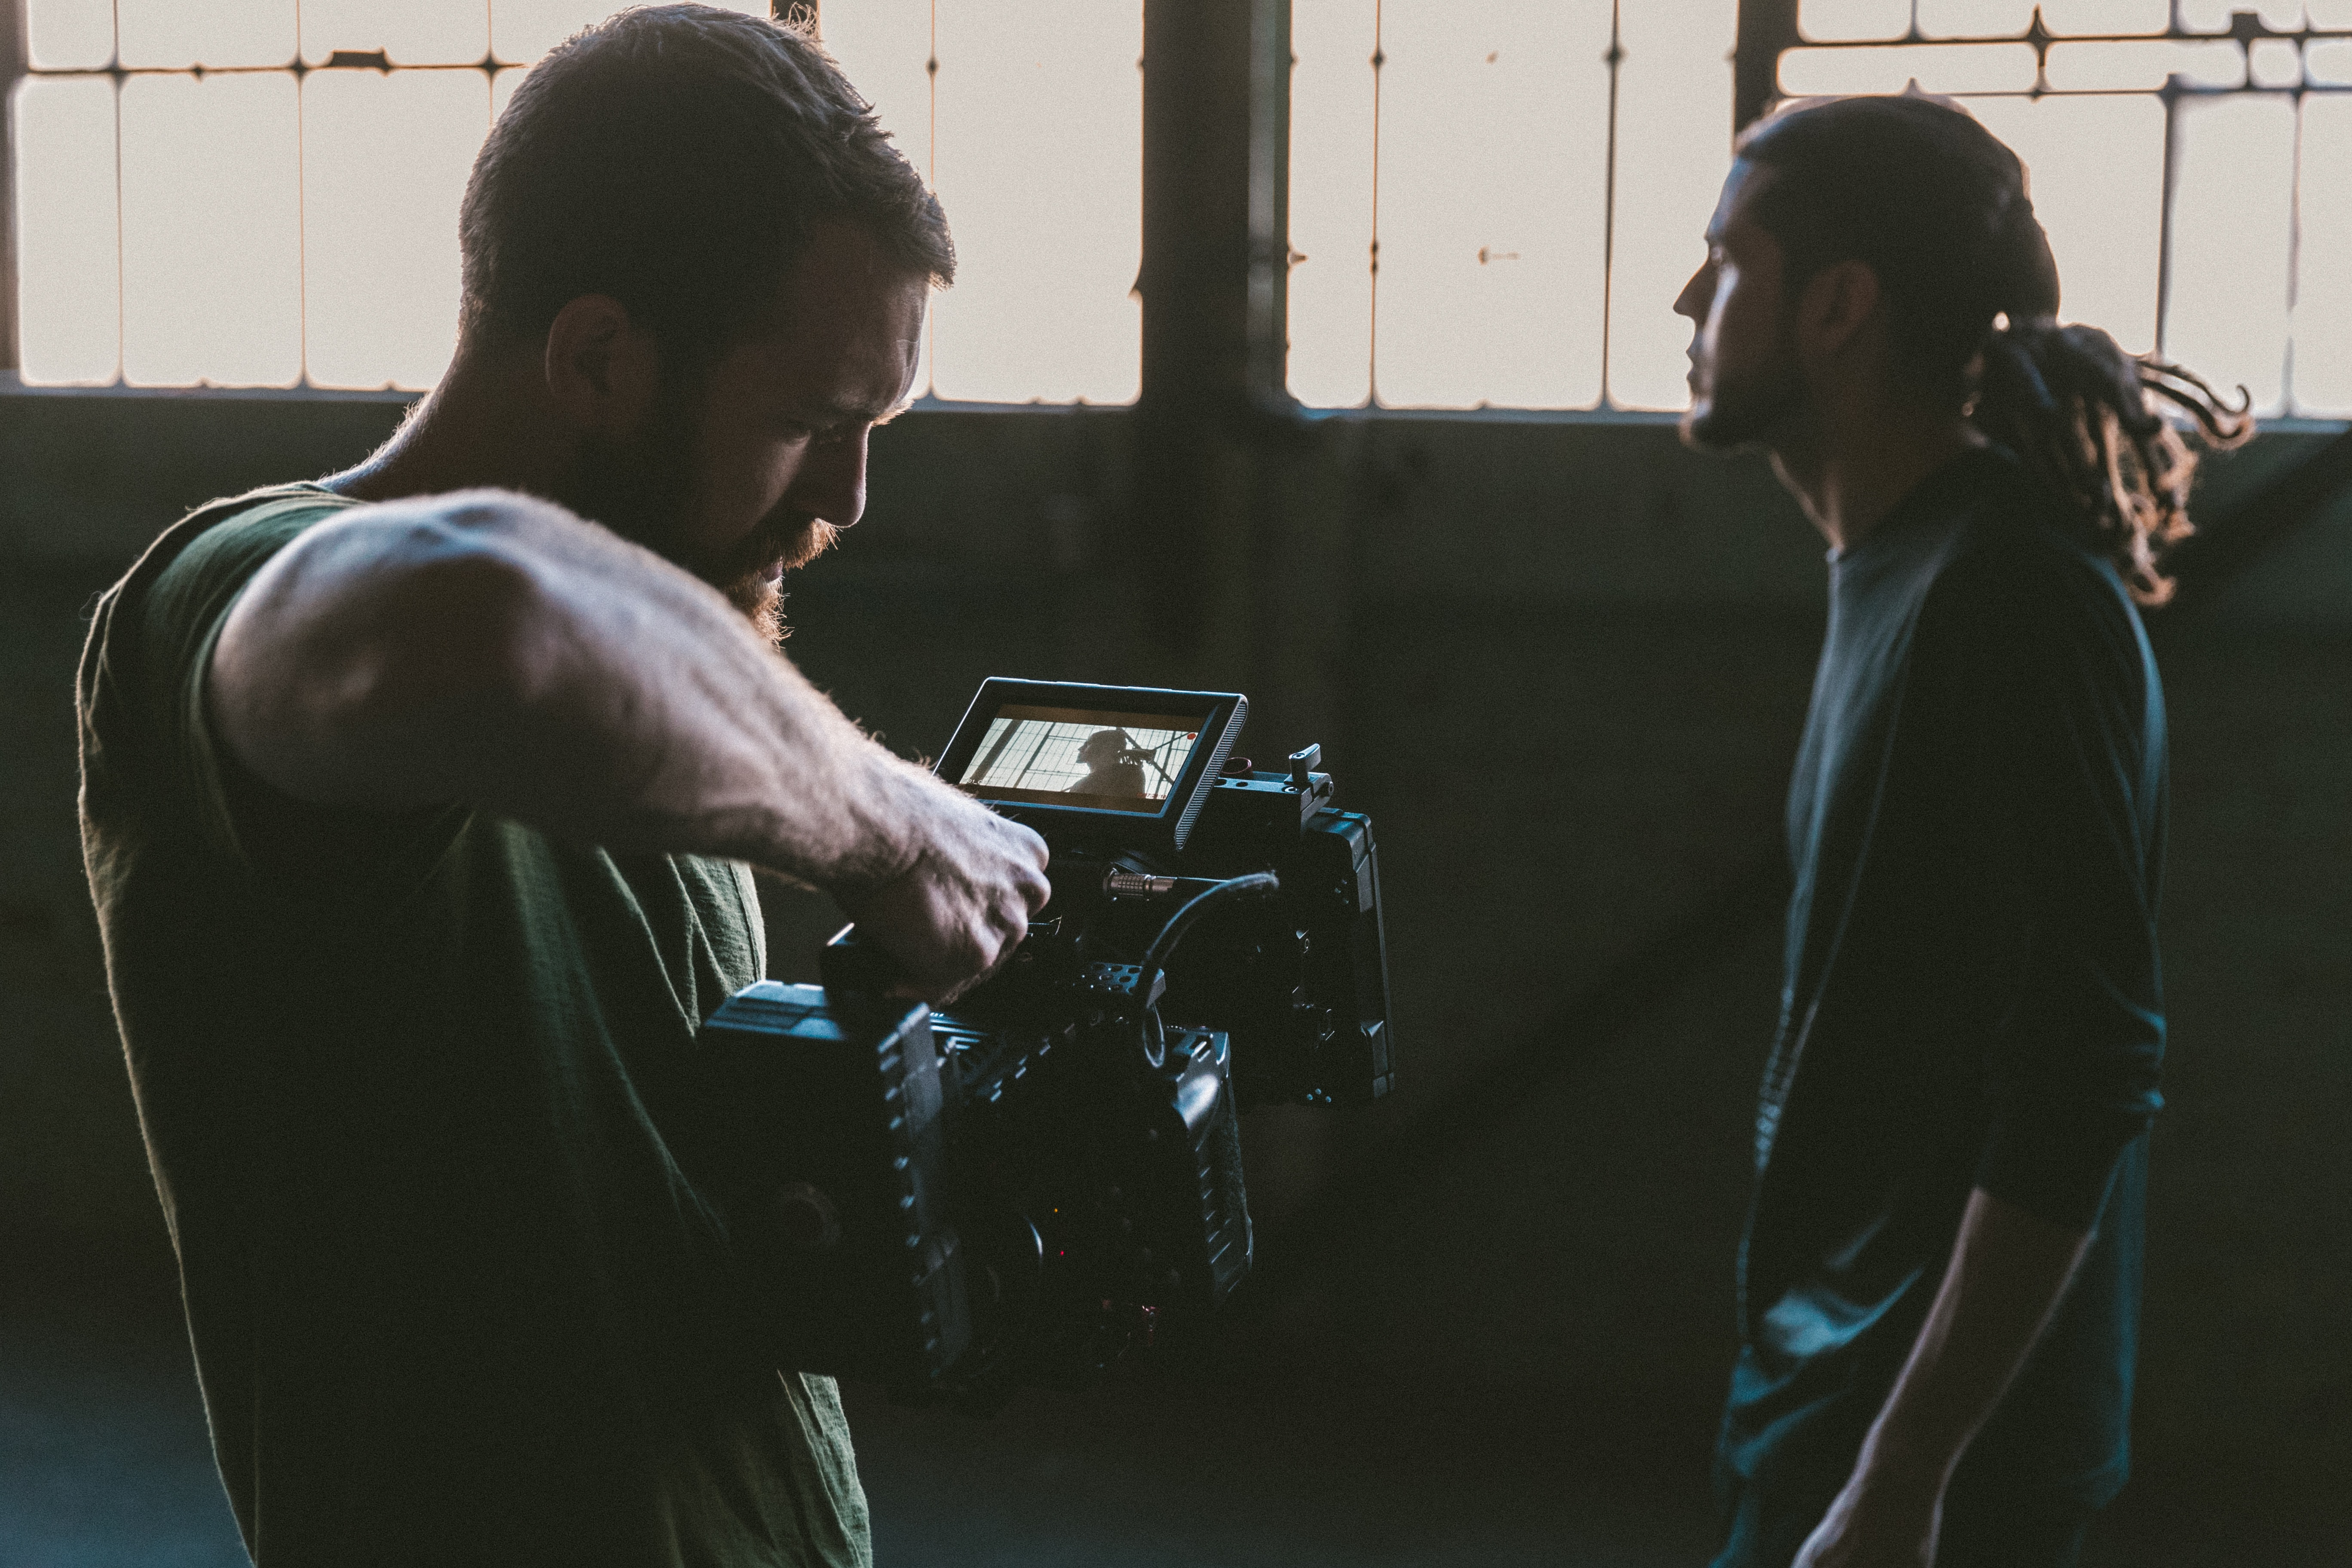 A man holding a professional video camera in an indoor environment